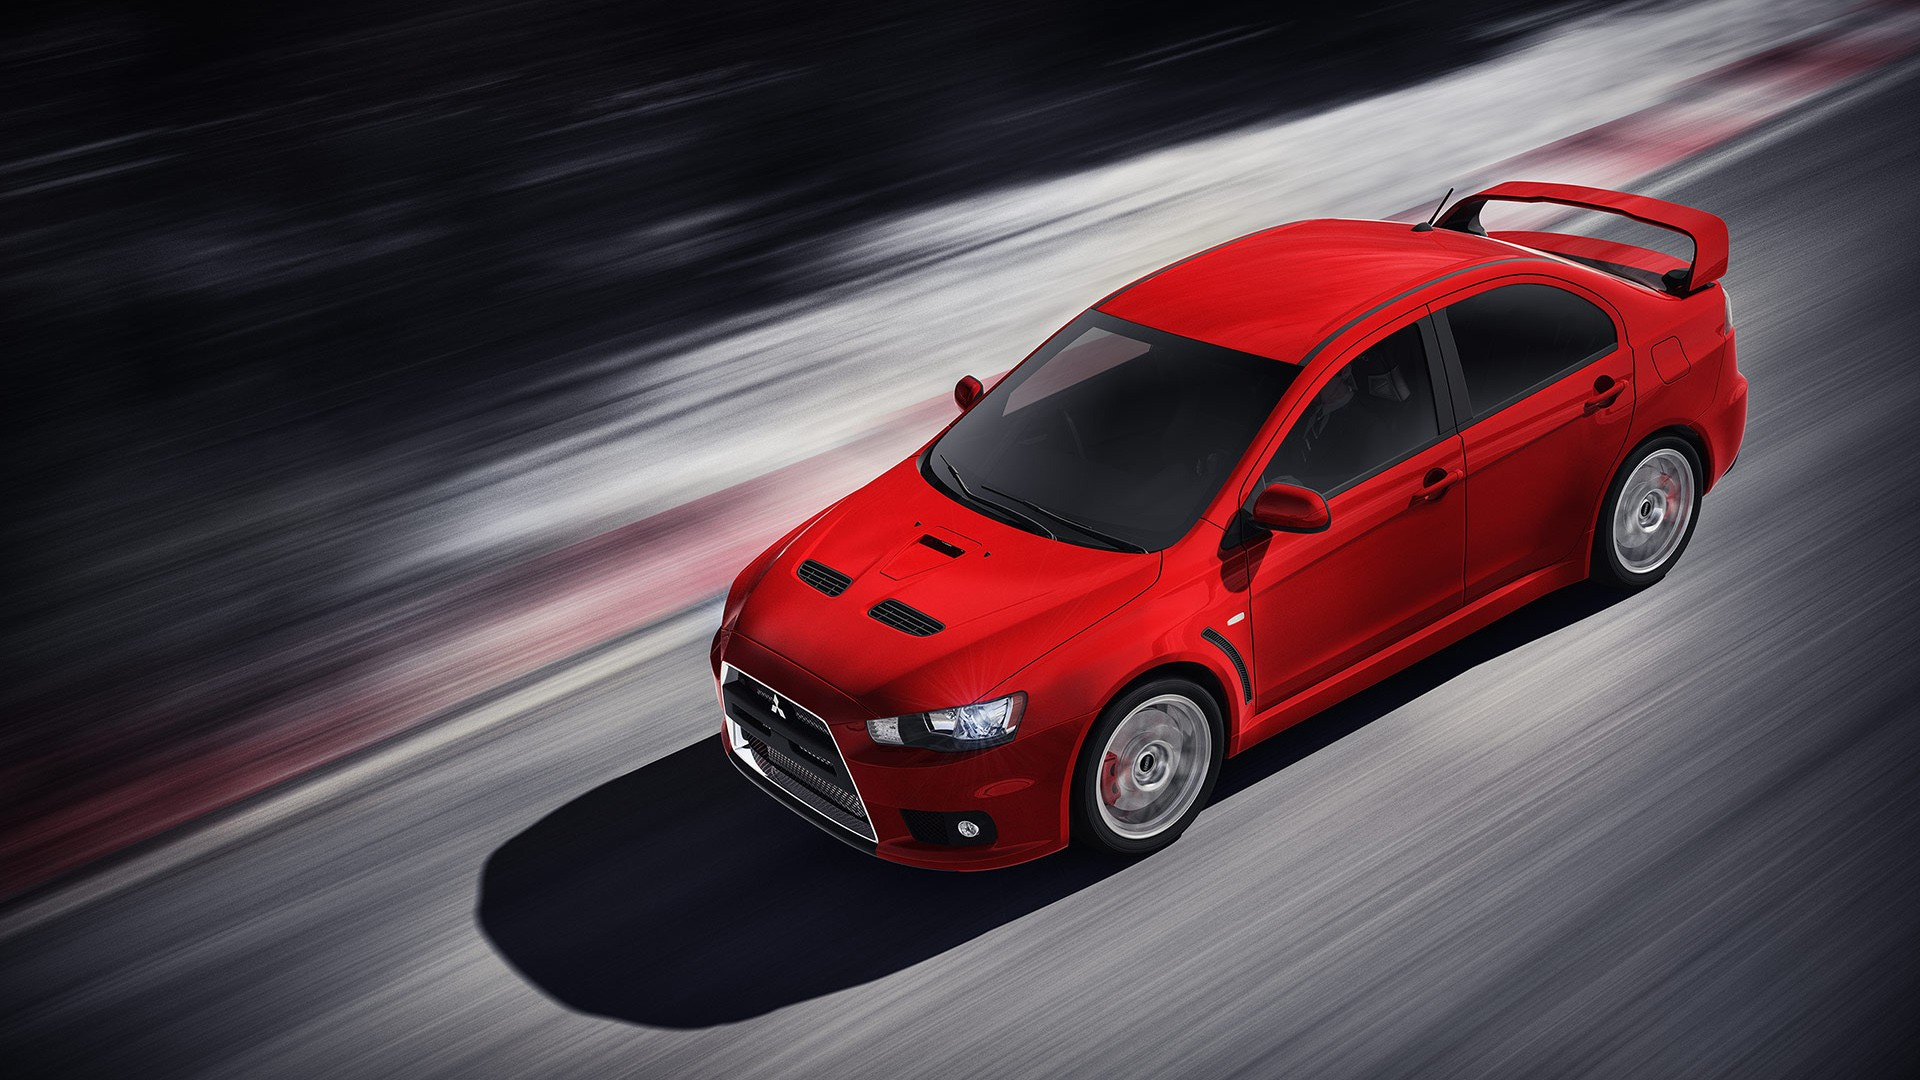 Lancer Evolution X Wallpaper | HD Car Wallpapers | ID #3374